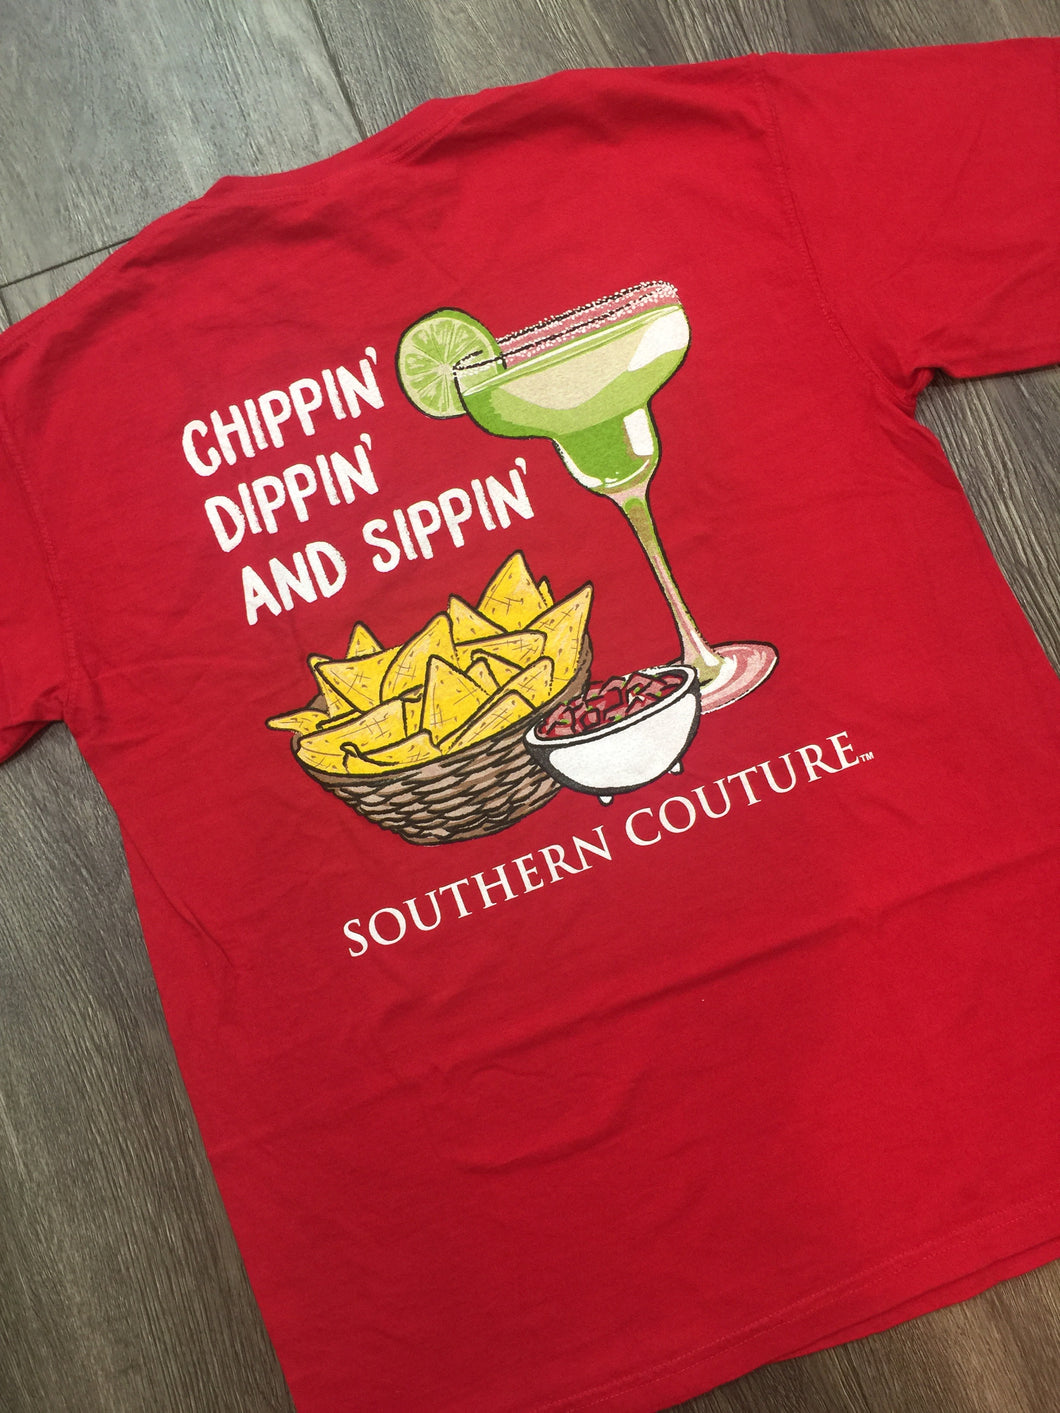 Southern Couture ~ Chippin Dippin and Sippin